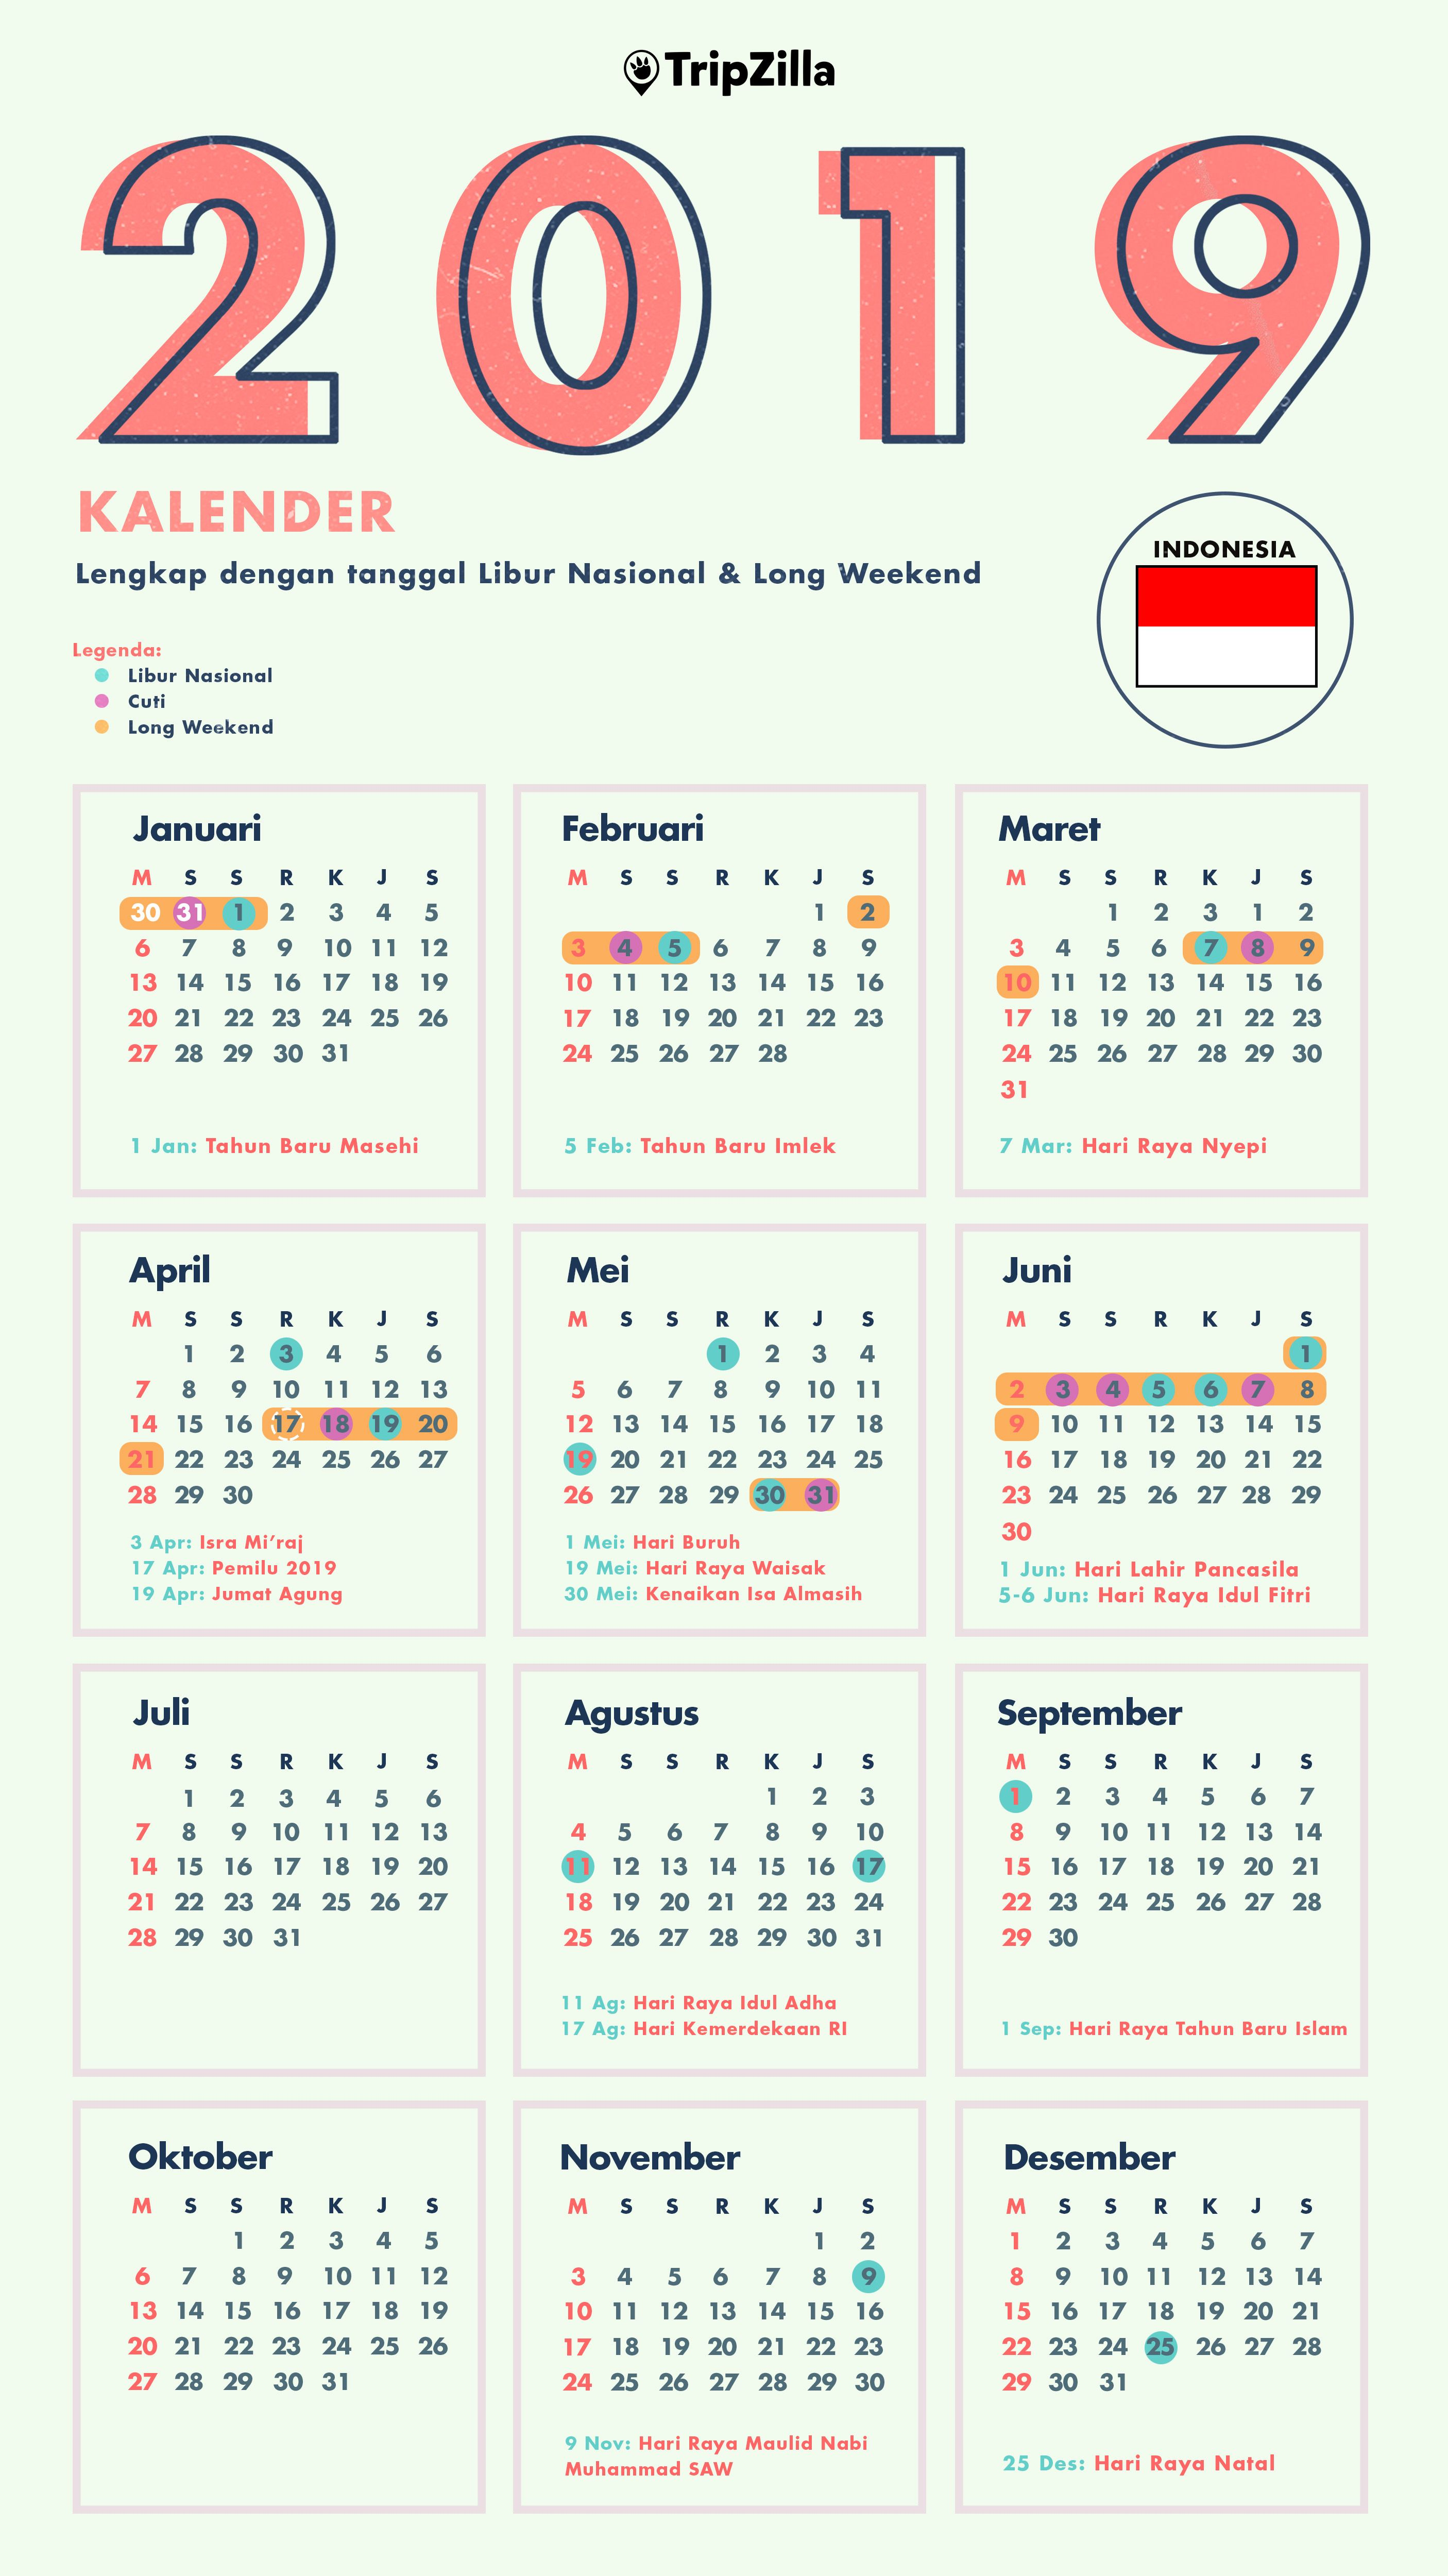 kalender libur nasional 2019 indonesia di 2019 | Wallpaper ...